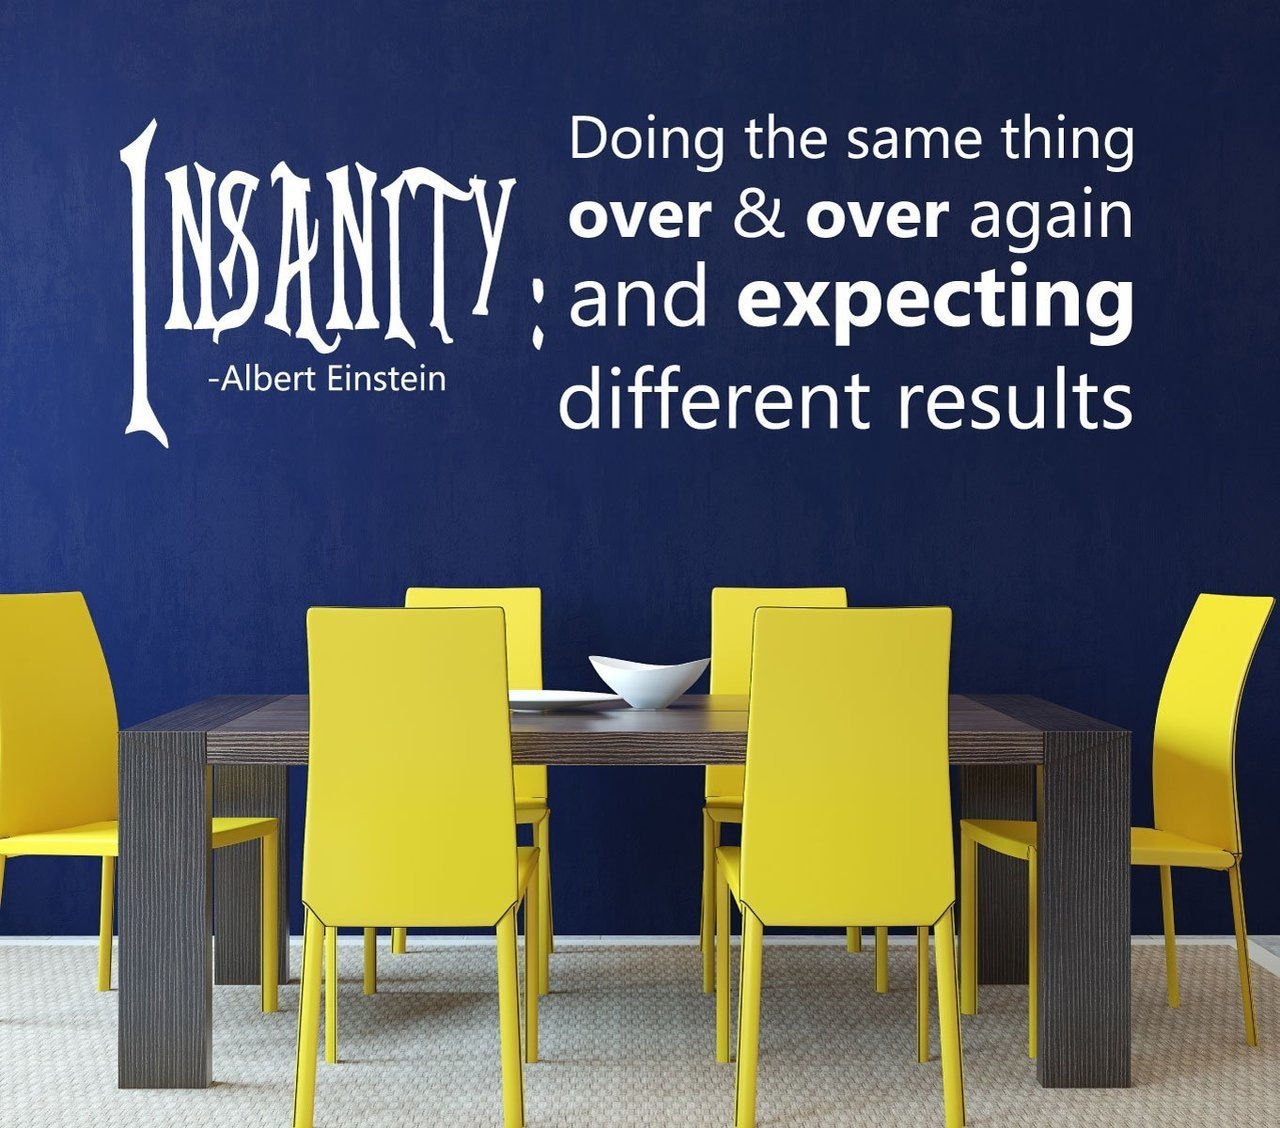 Insanity: Doing the Same Thing Over & Over Again and Expecting Different Results - Albert Einstein